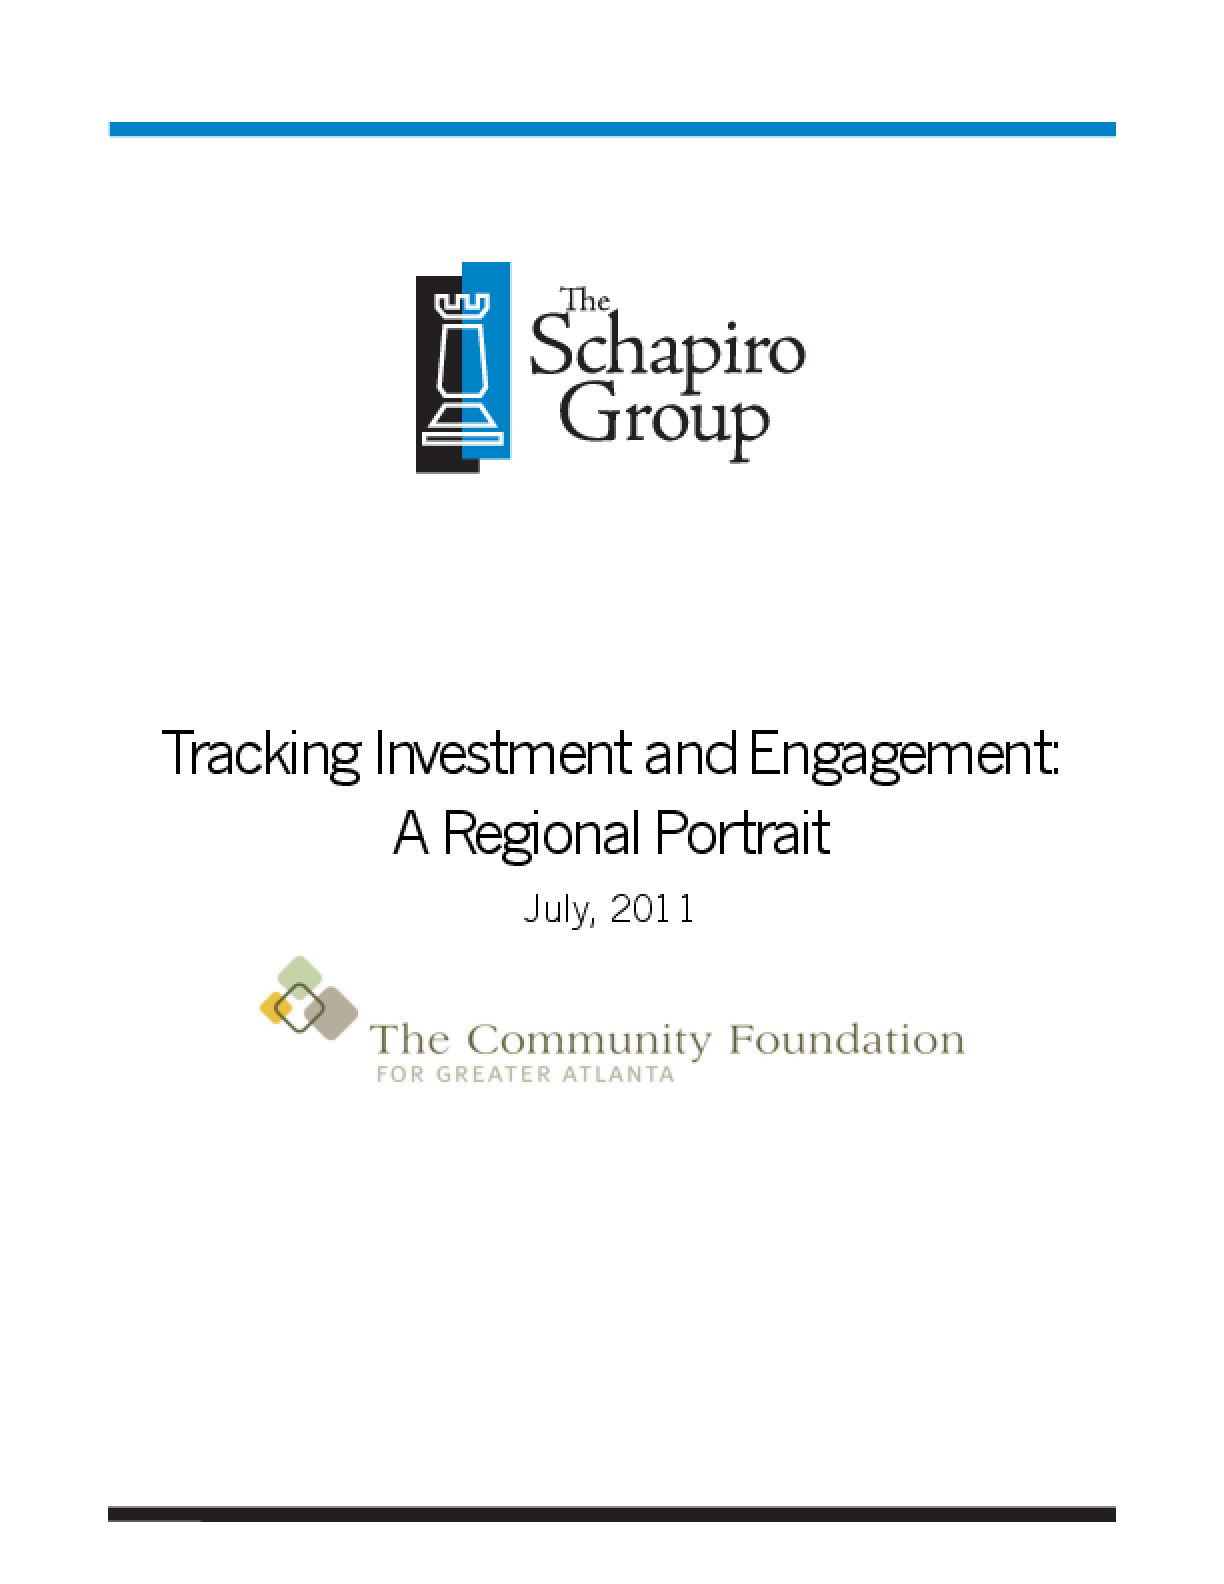 Tracking Investment and Engagement: A Regional Portrait